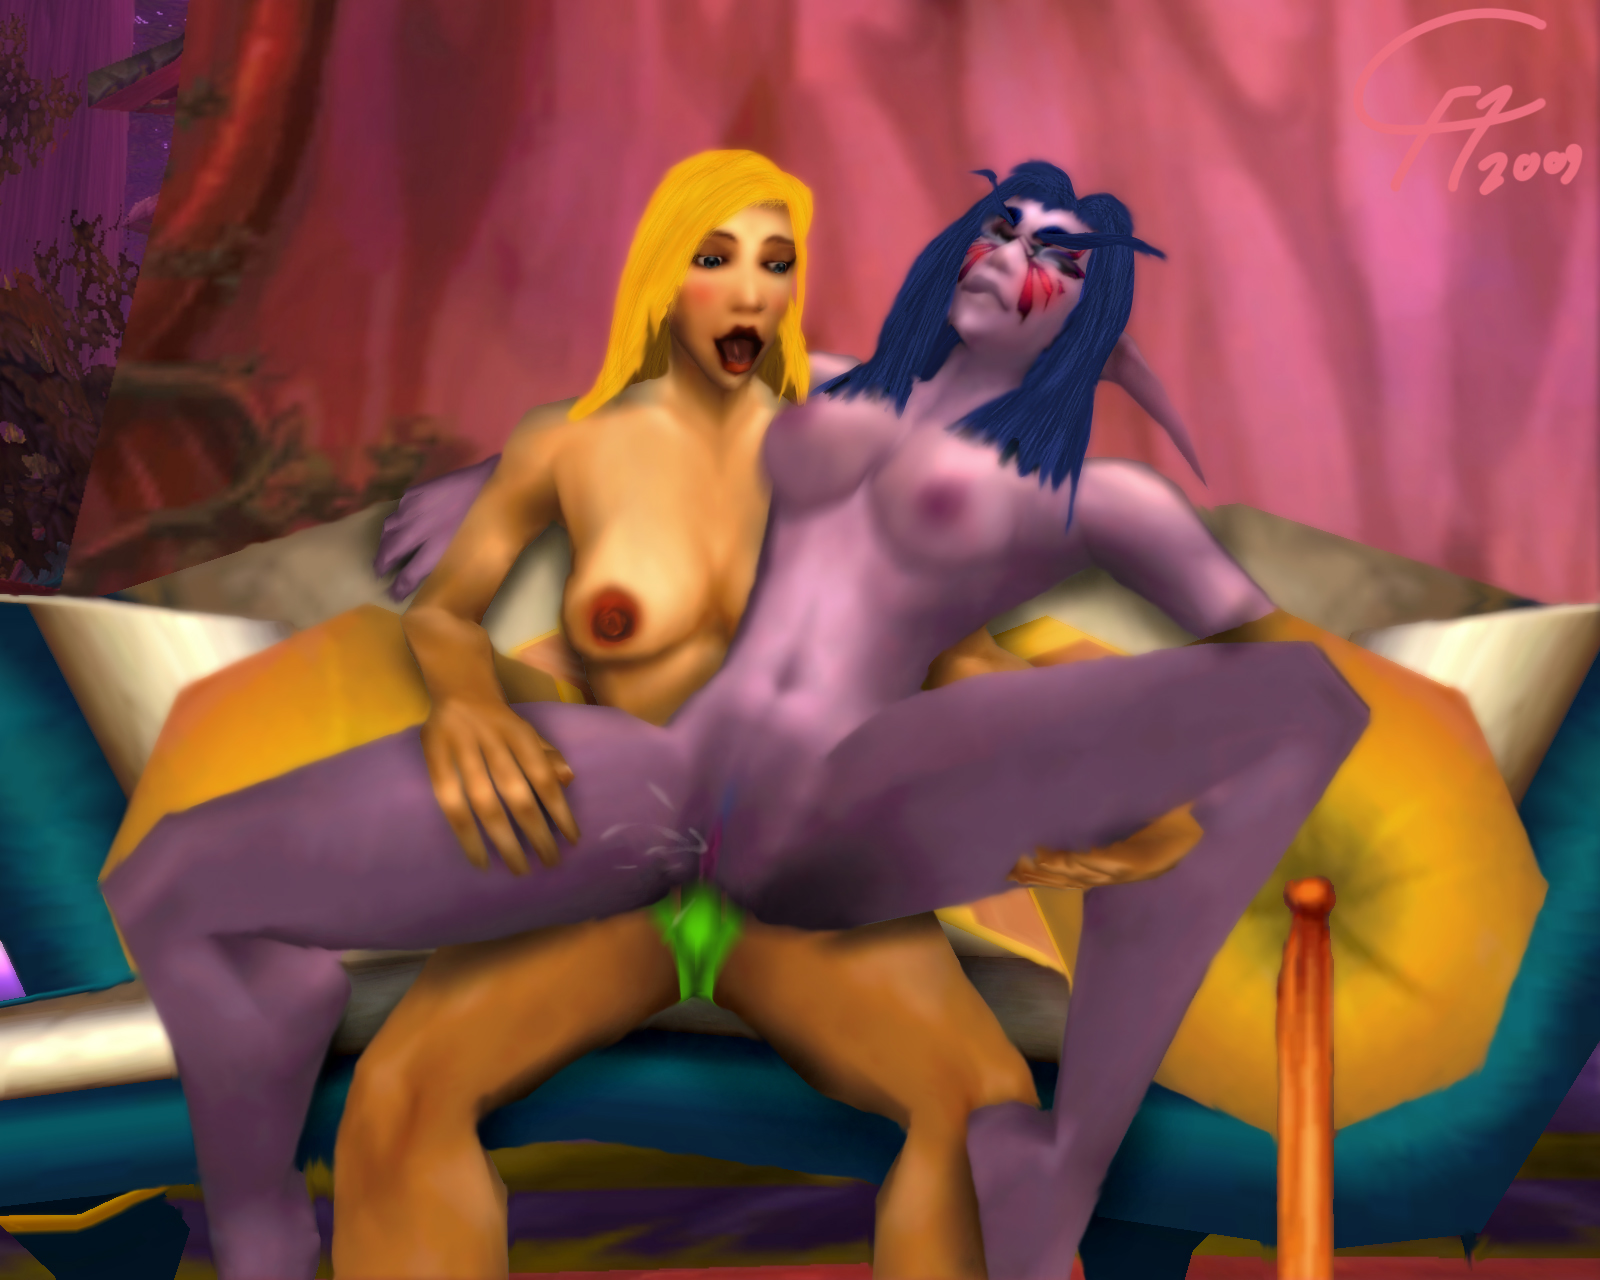 Naked nelfs jizzart sex download